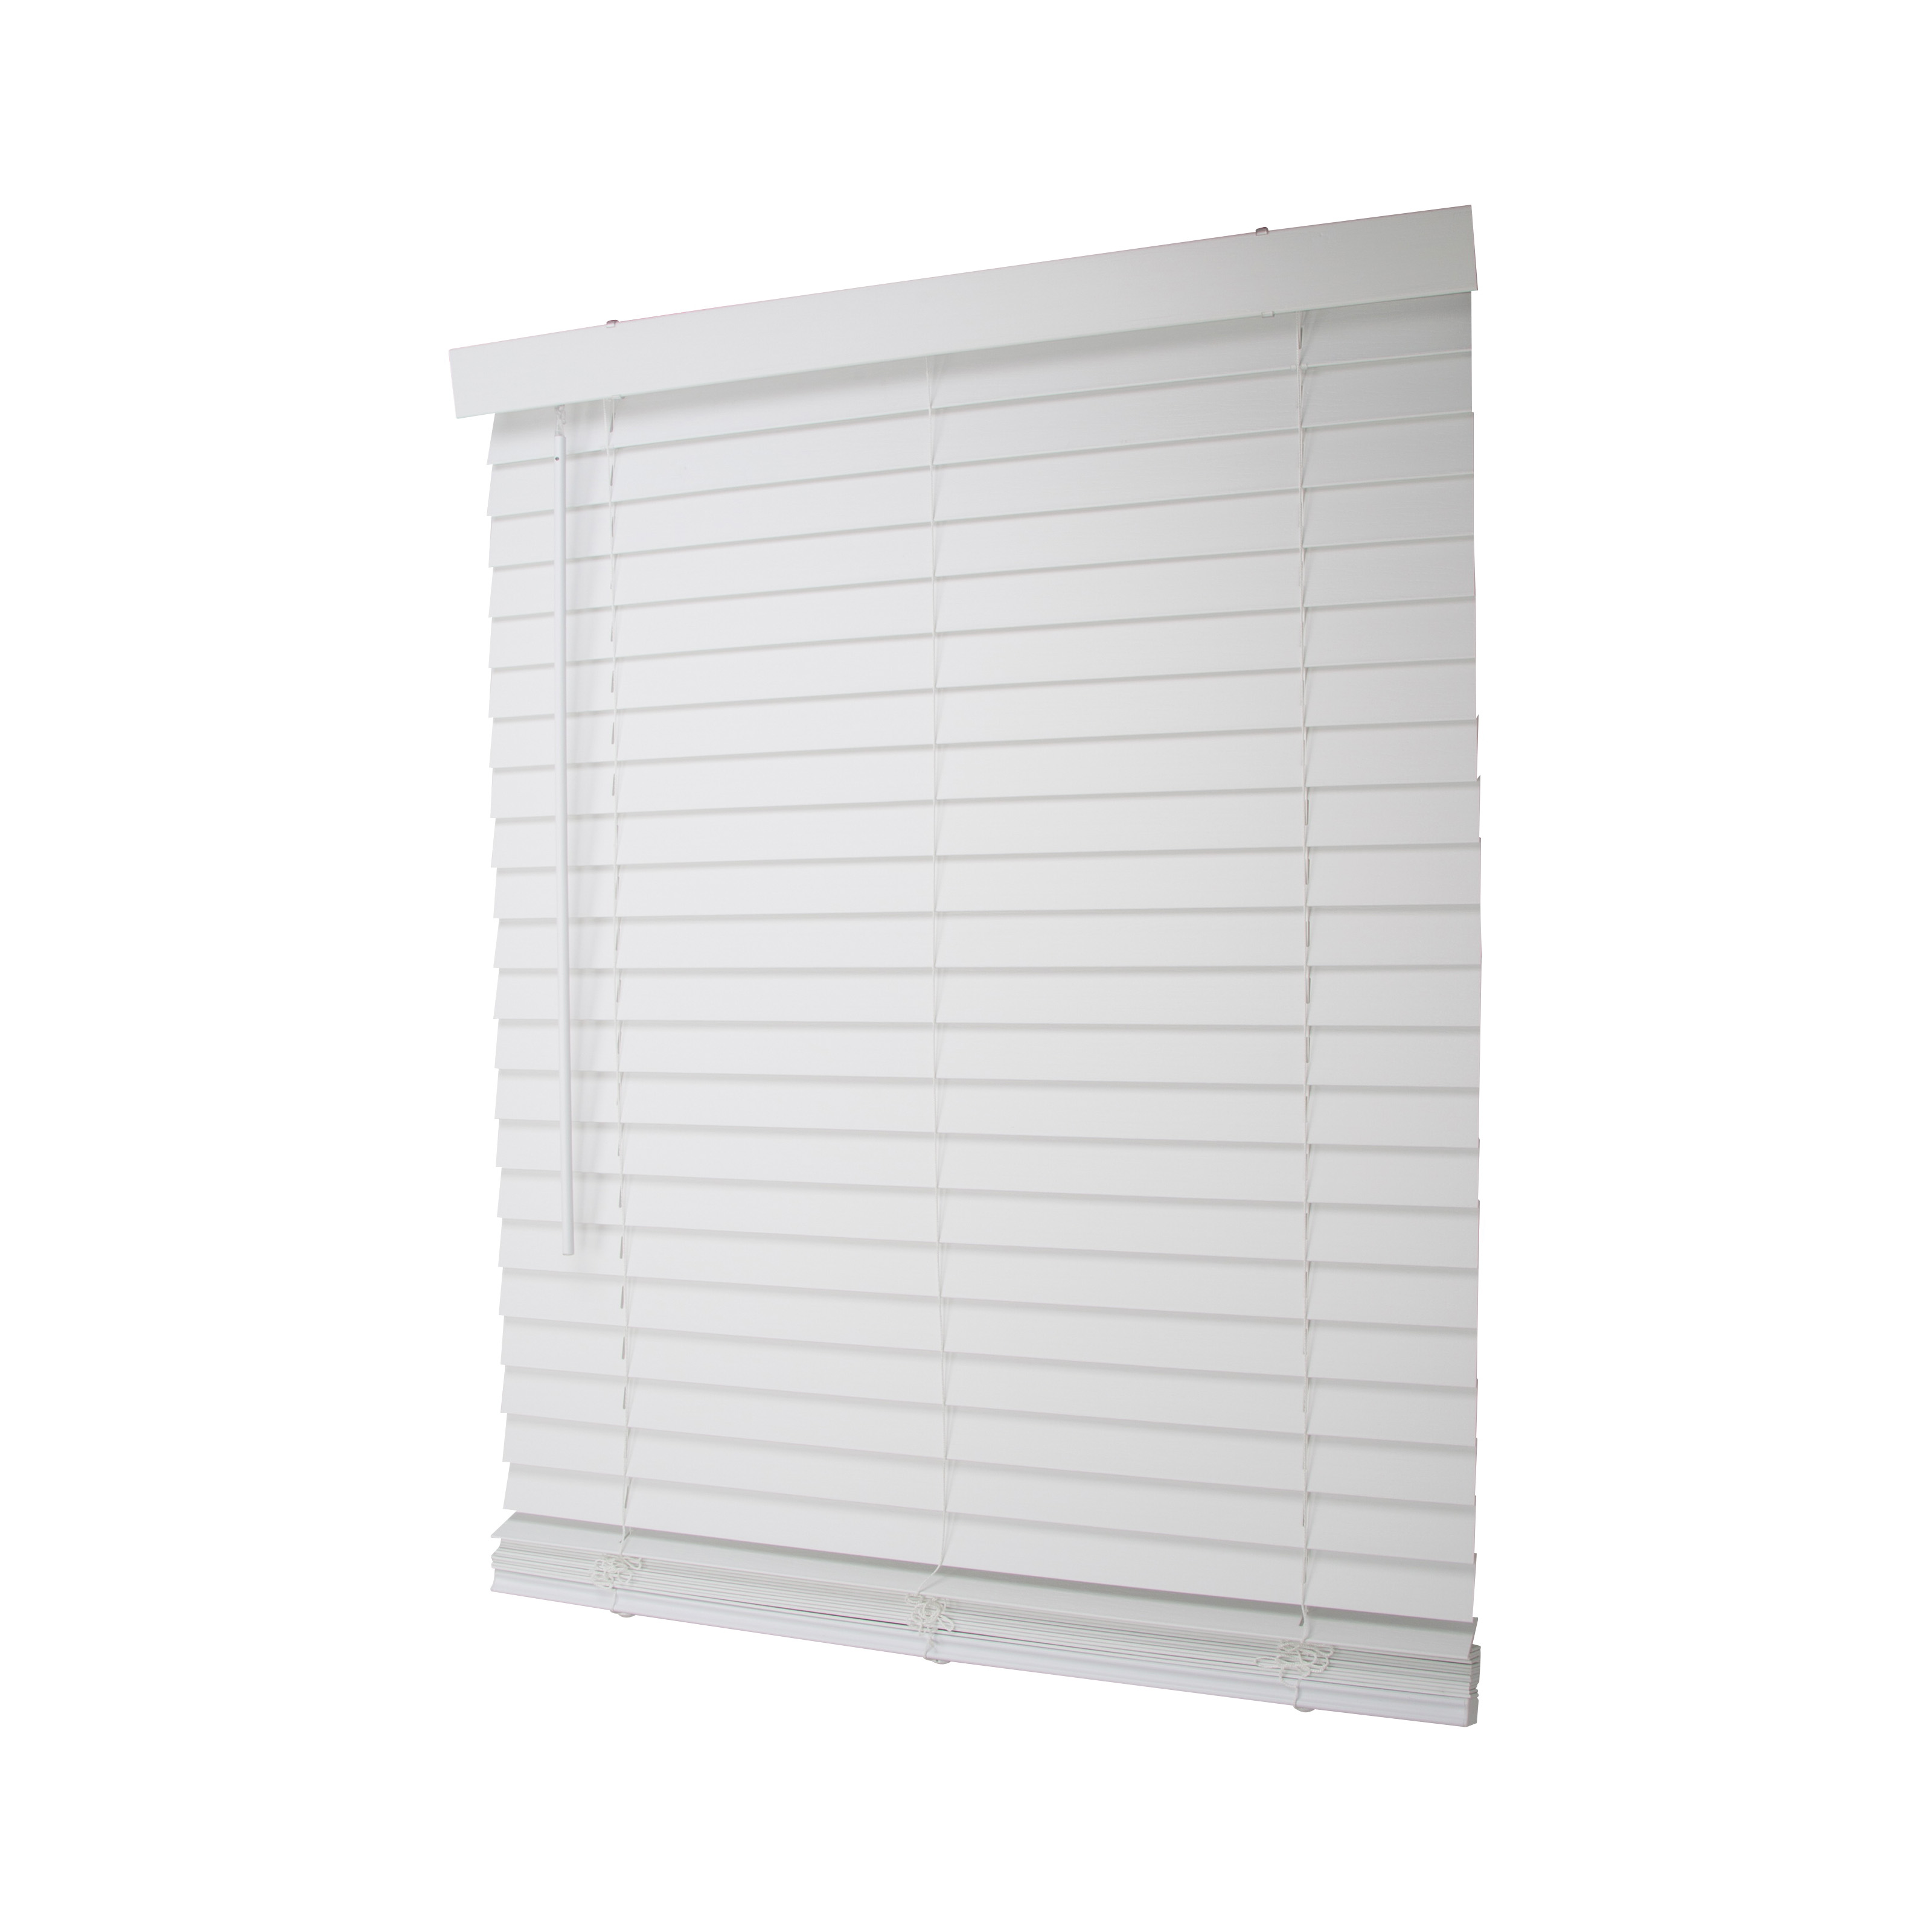 Picture of Simple Spaces FWMB-31 Cordless Mini Blind, 72 in L, 35 in W, Faux Wood, White